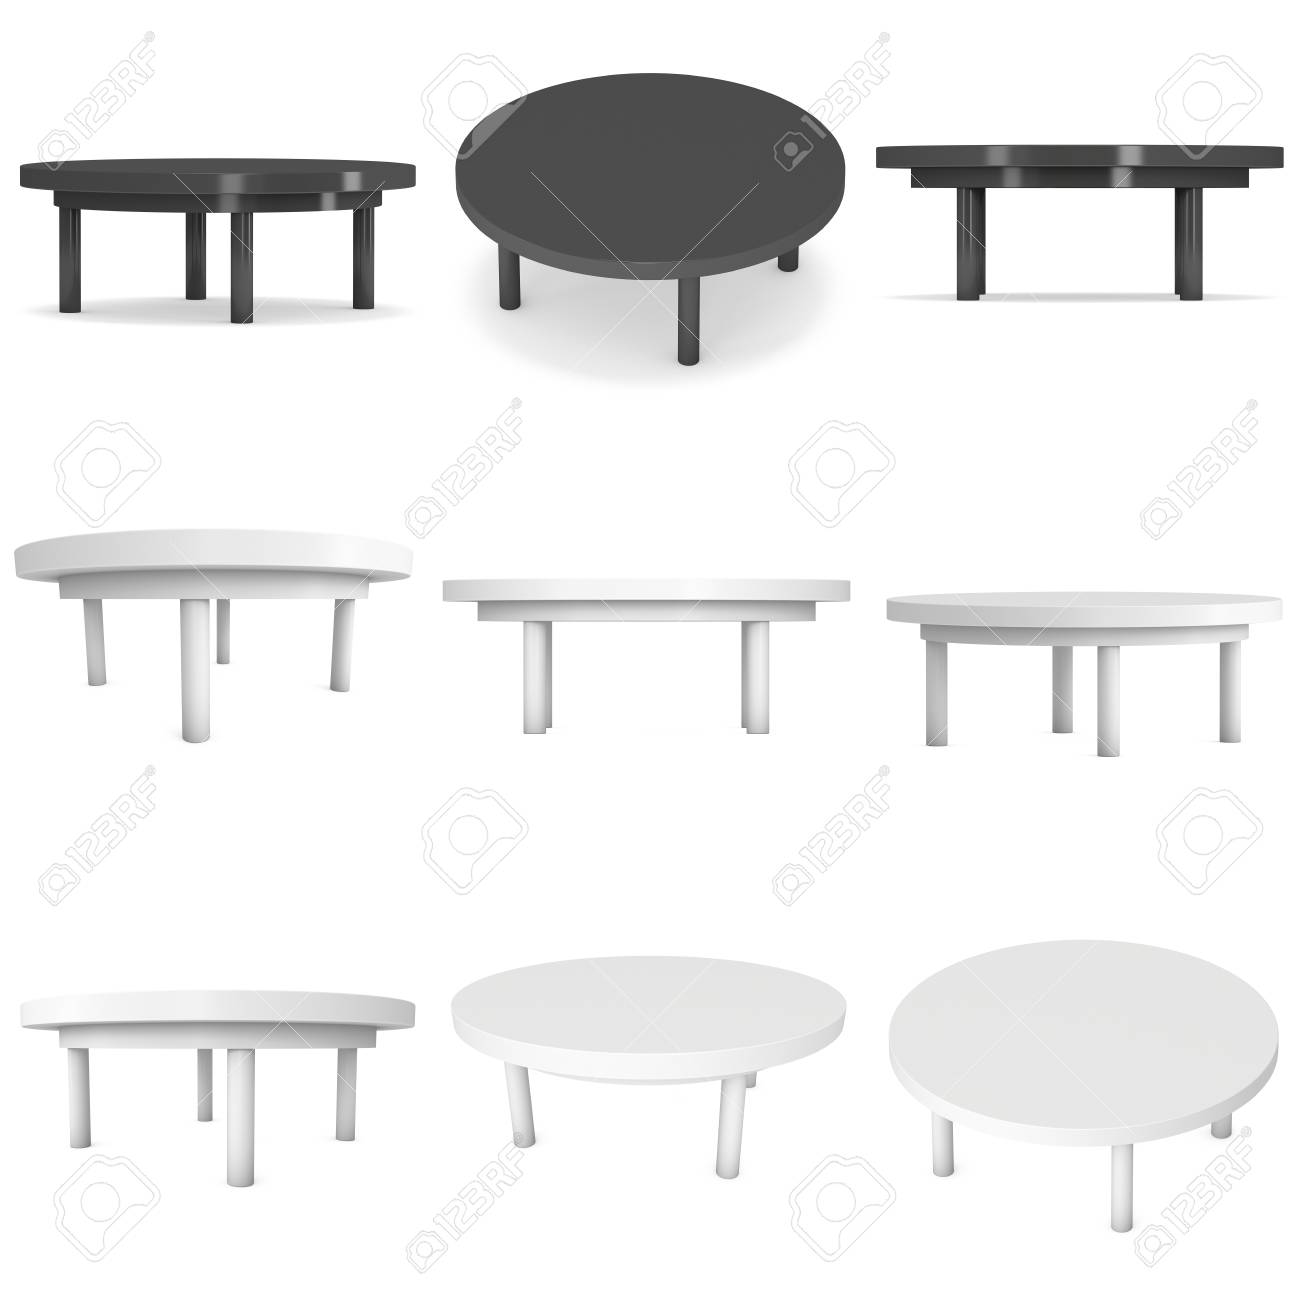 round table template